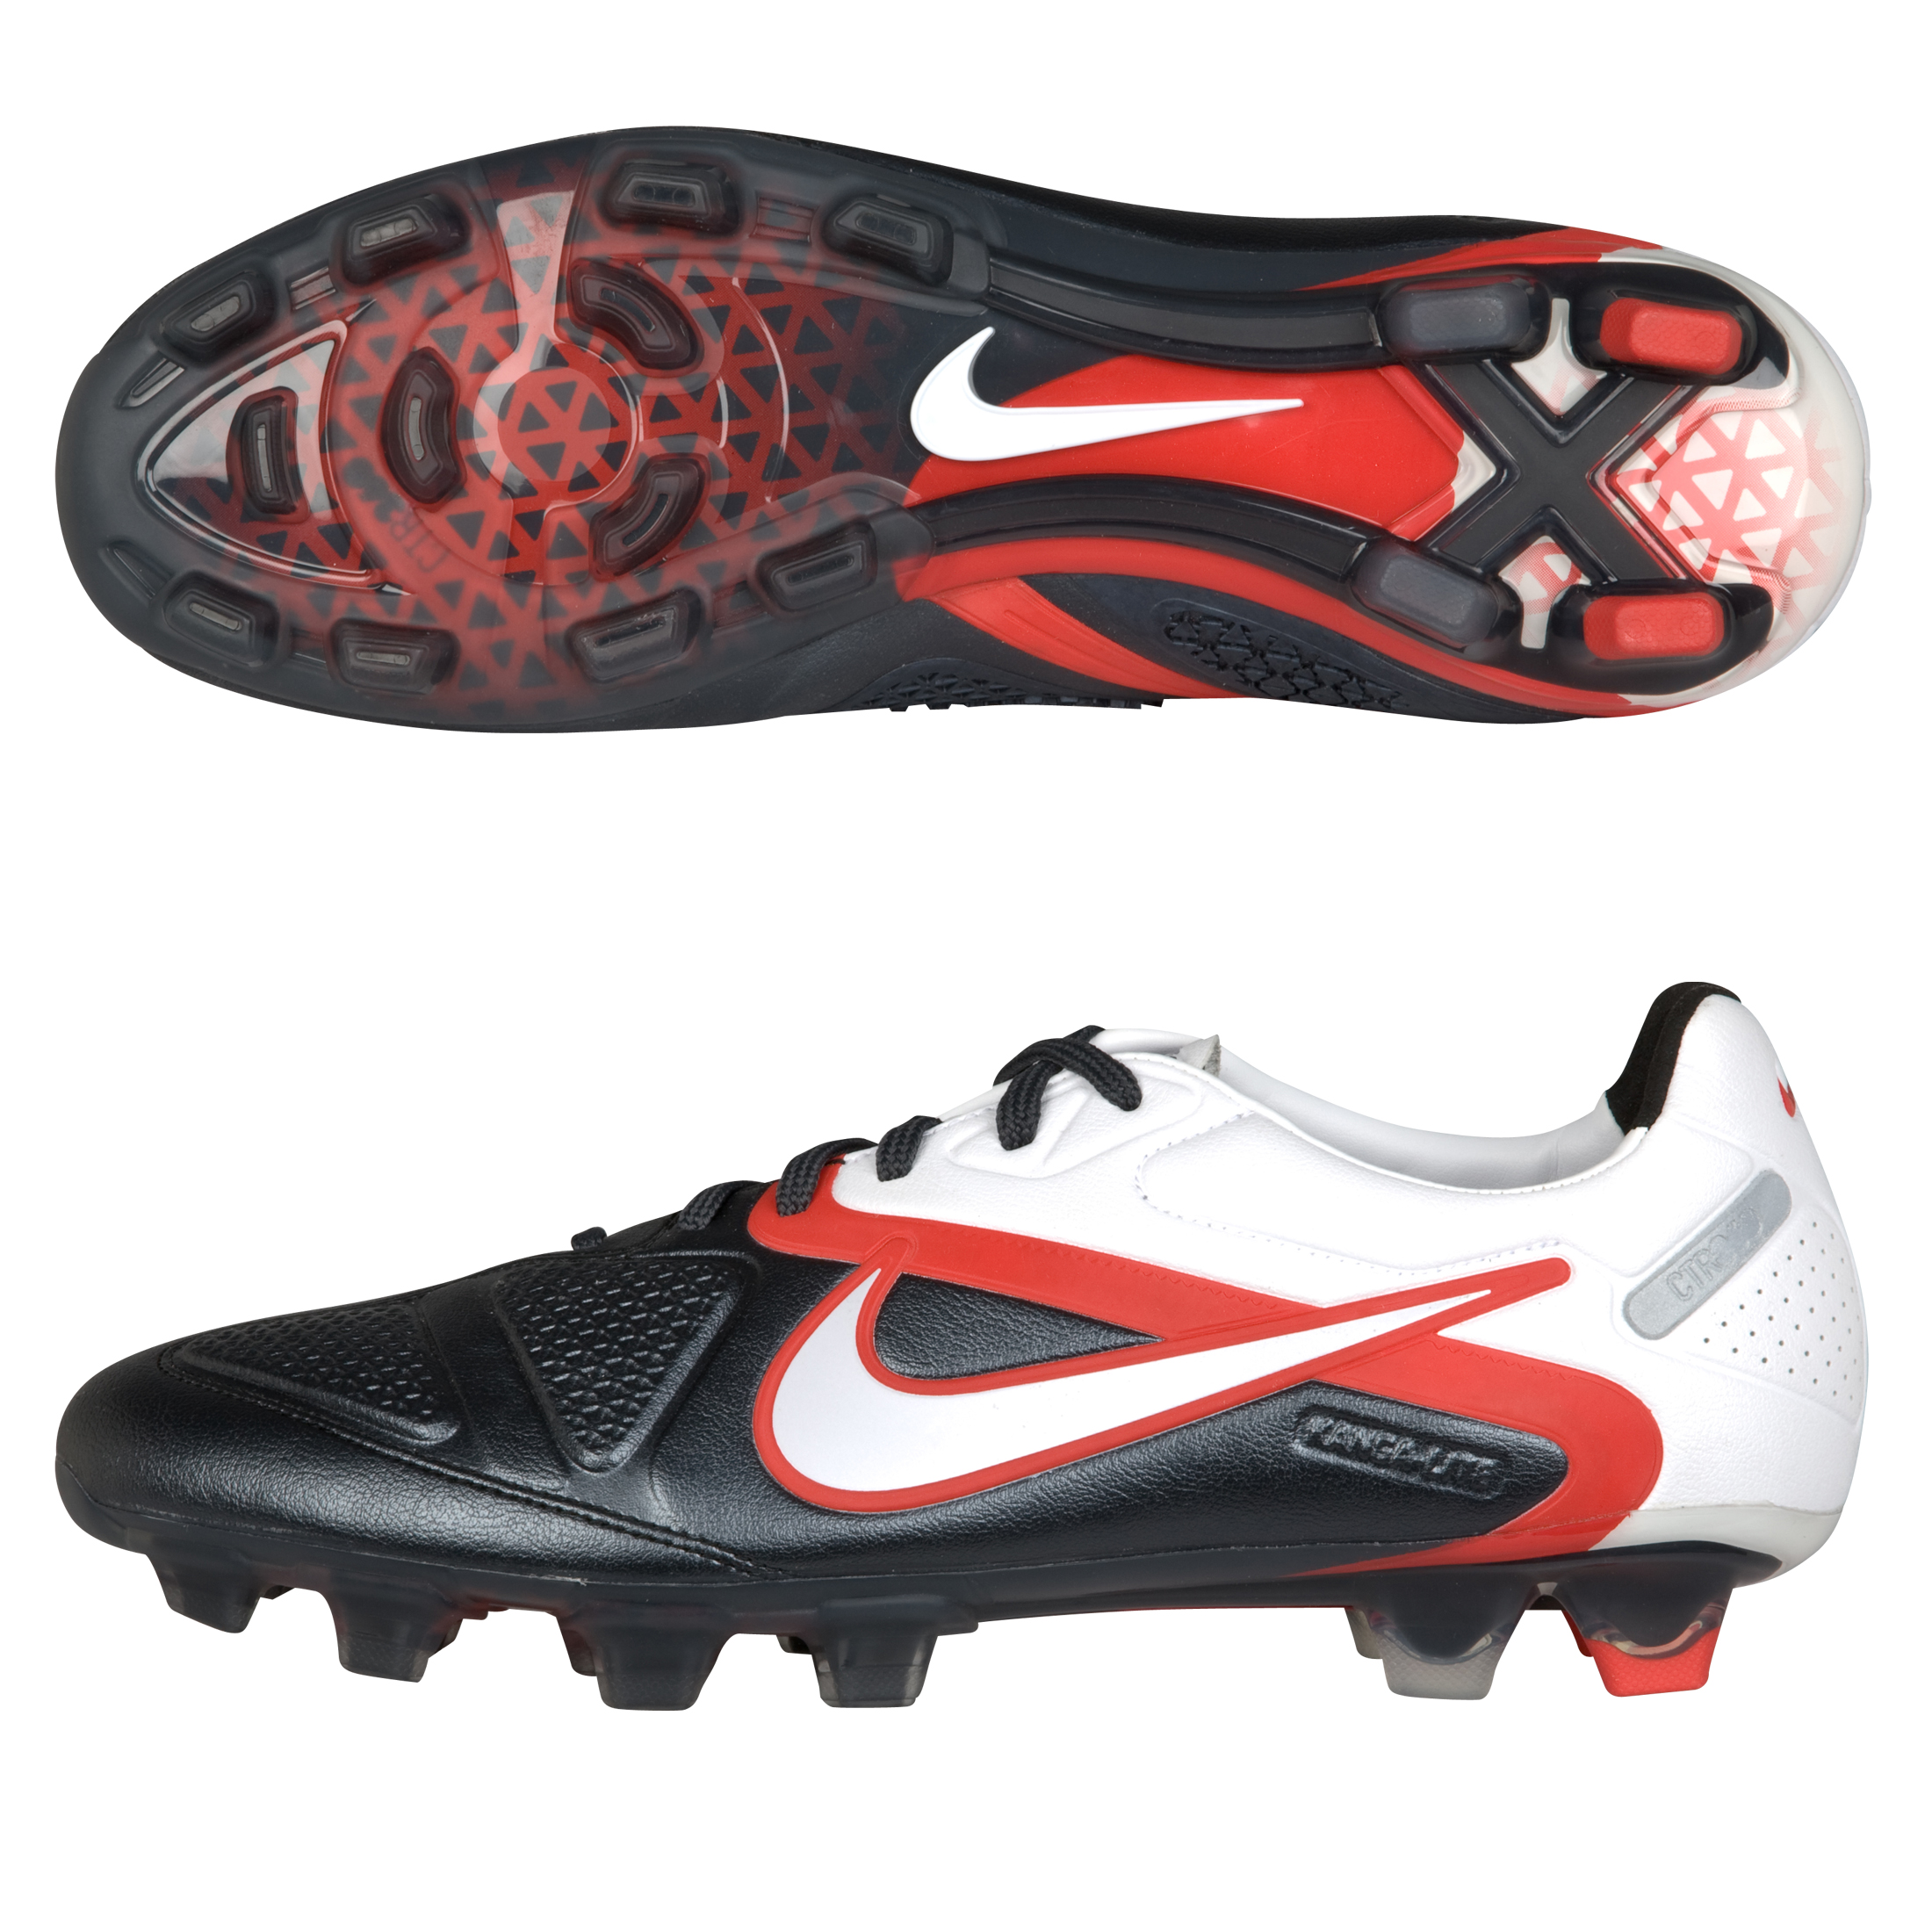 CTR360 Maestri II FG Black/White/Challenge Red